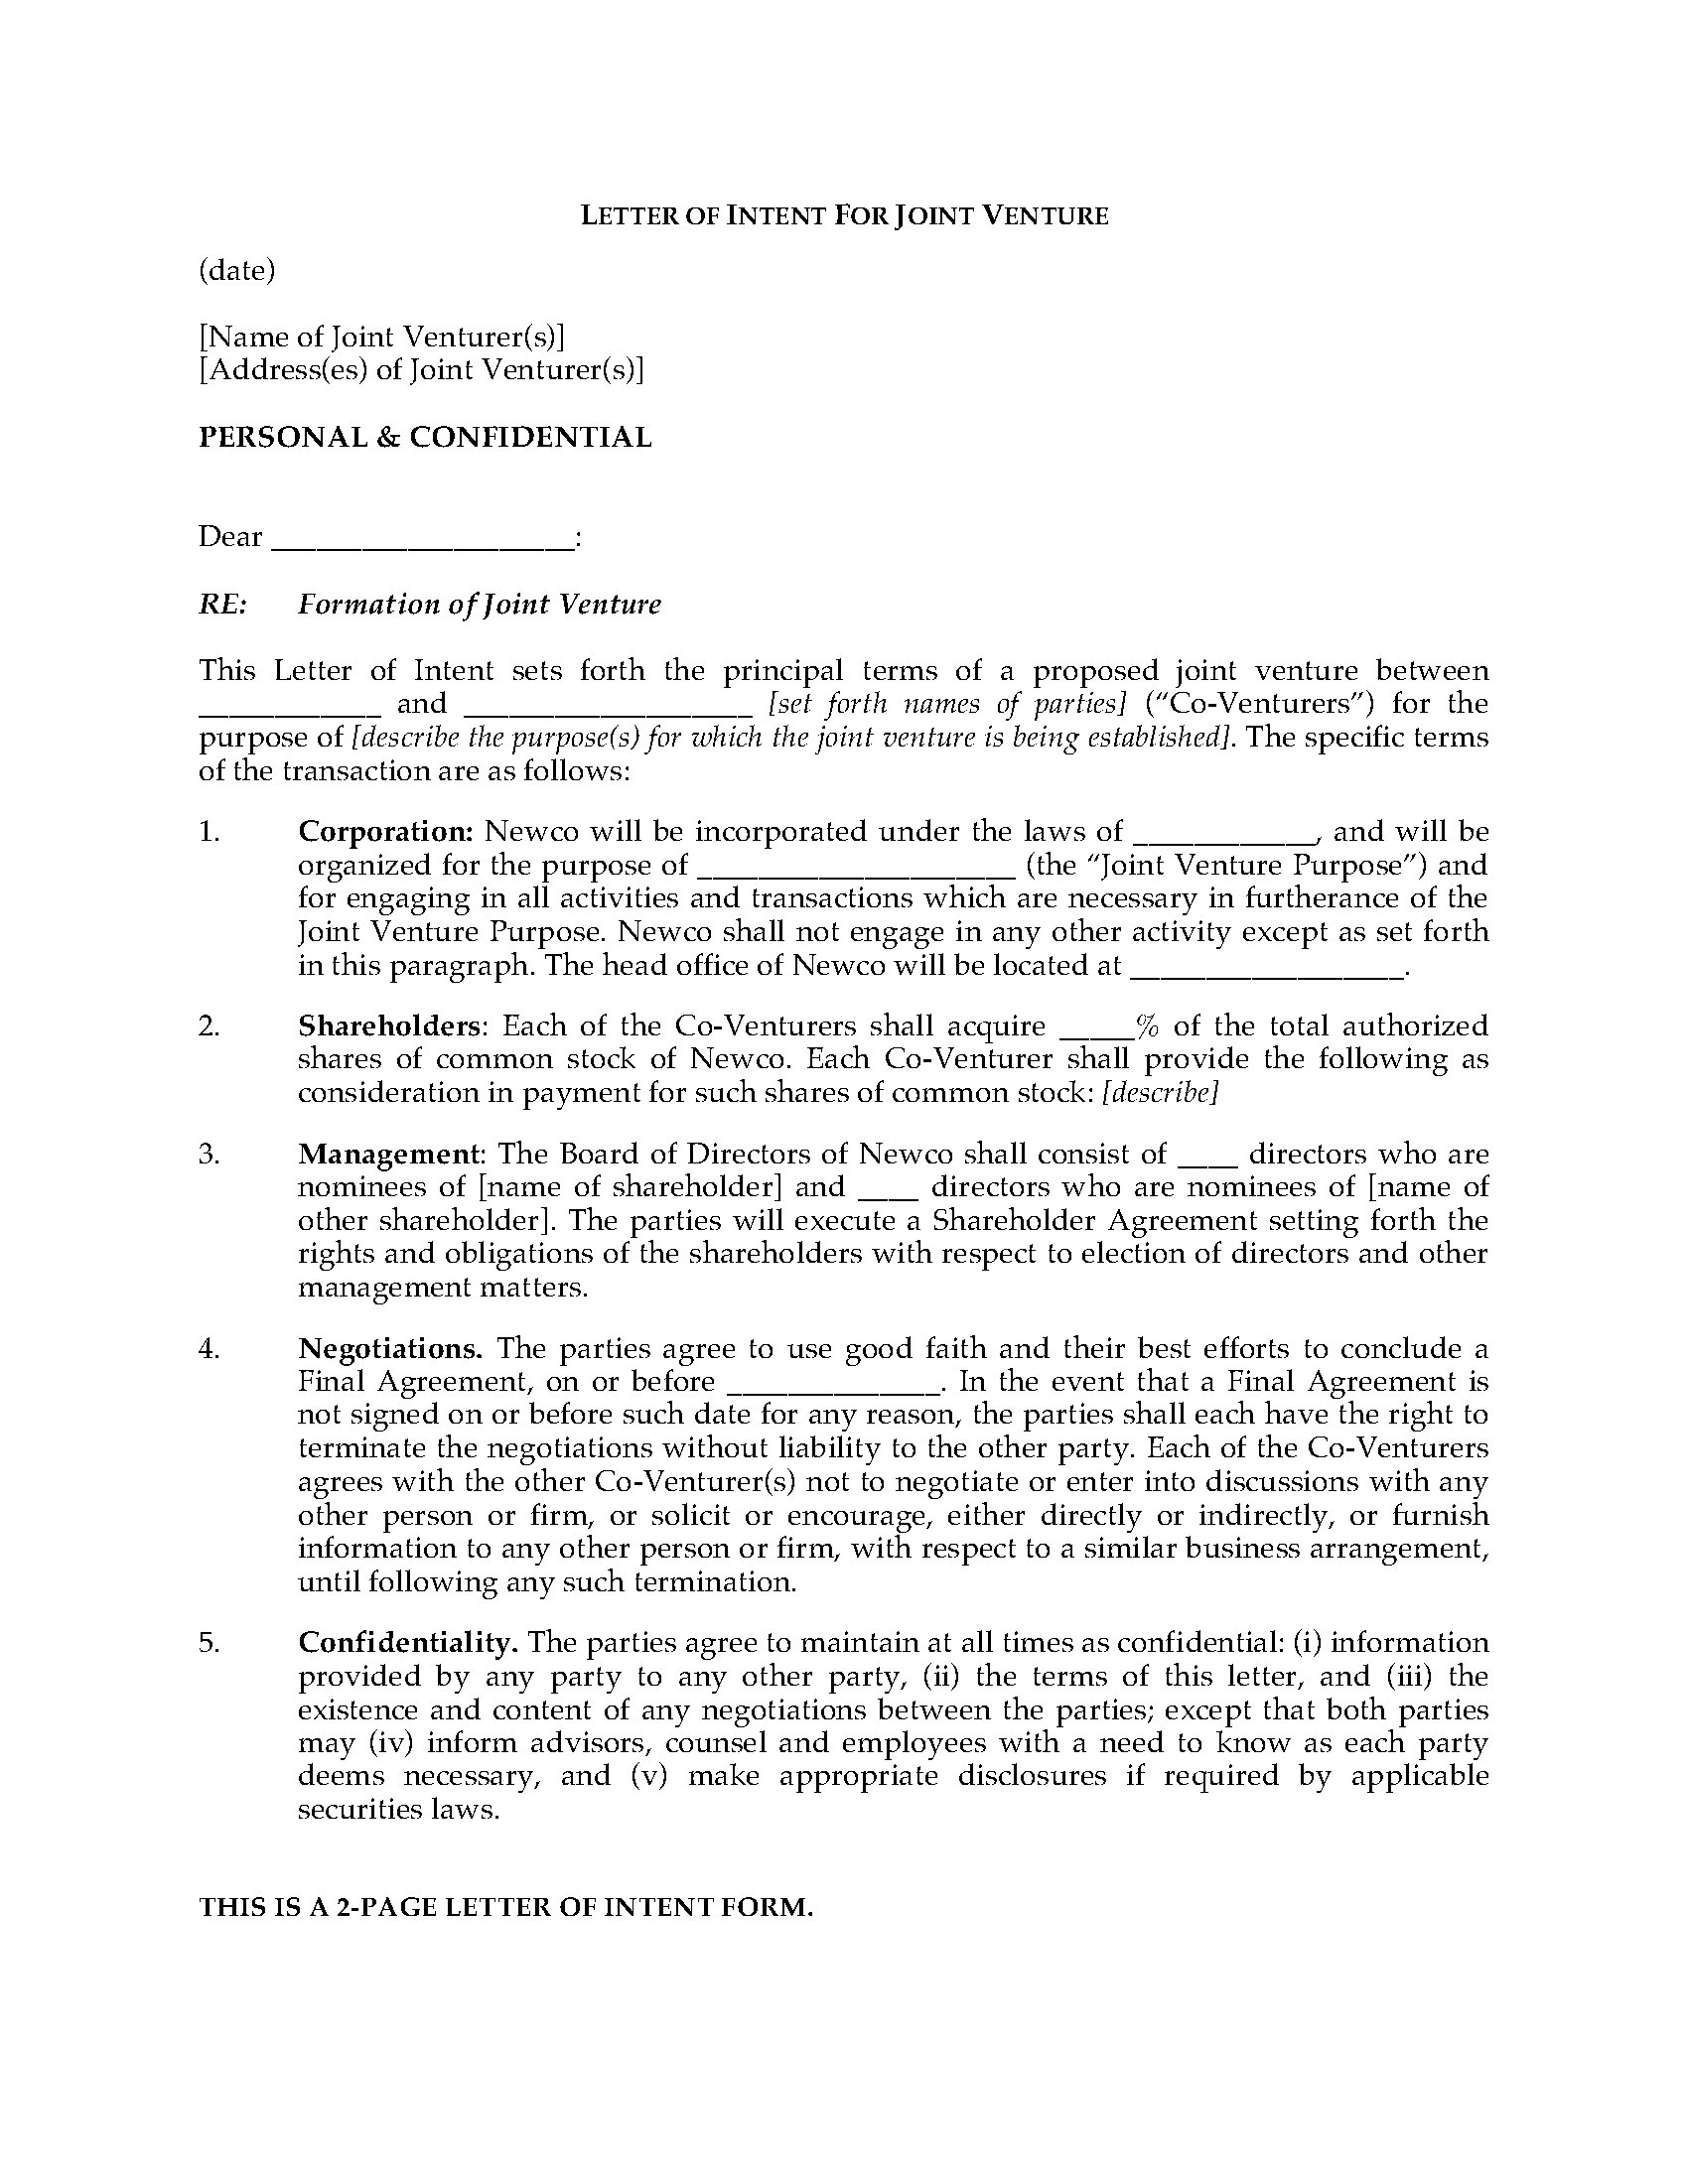 joint venture letter of intent template example-Letter Intent Legal Definition s High To Form Joint Venture Forms And Business 4-e